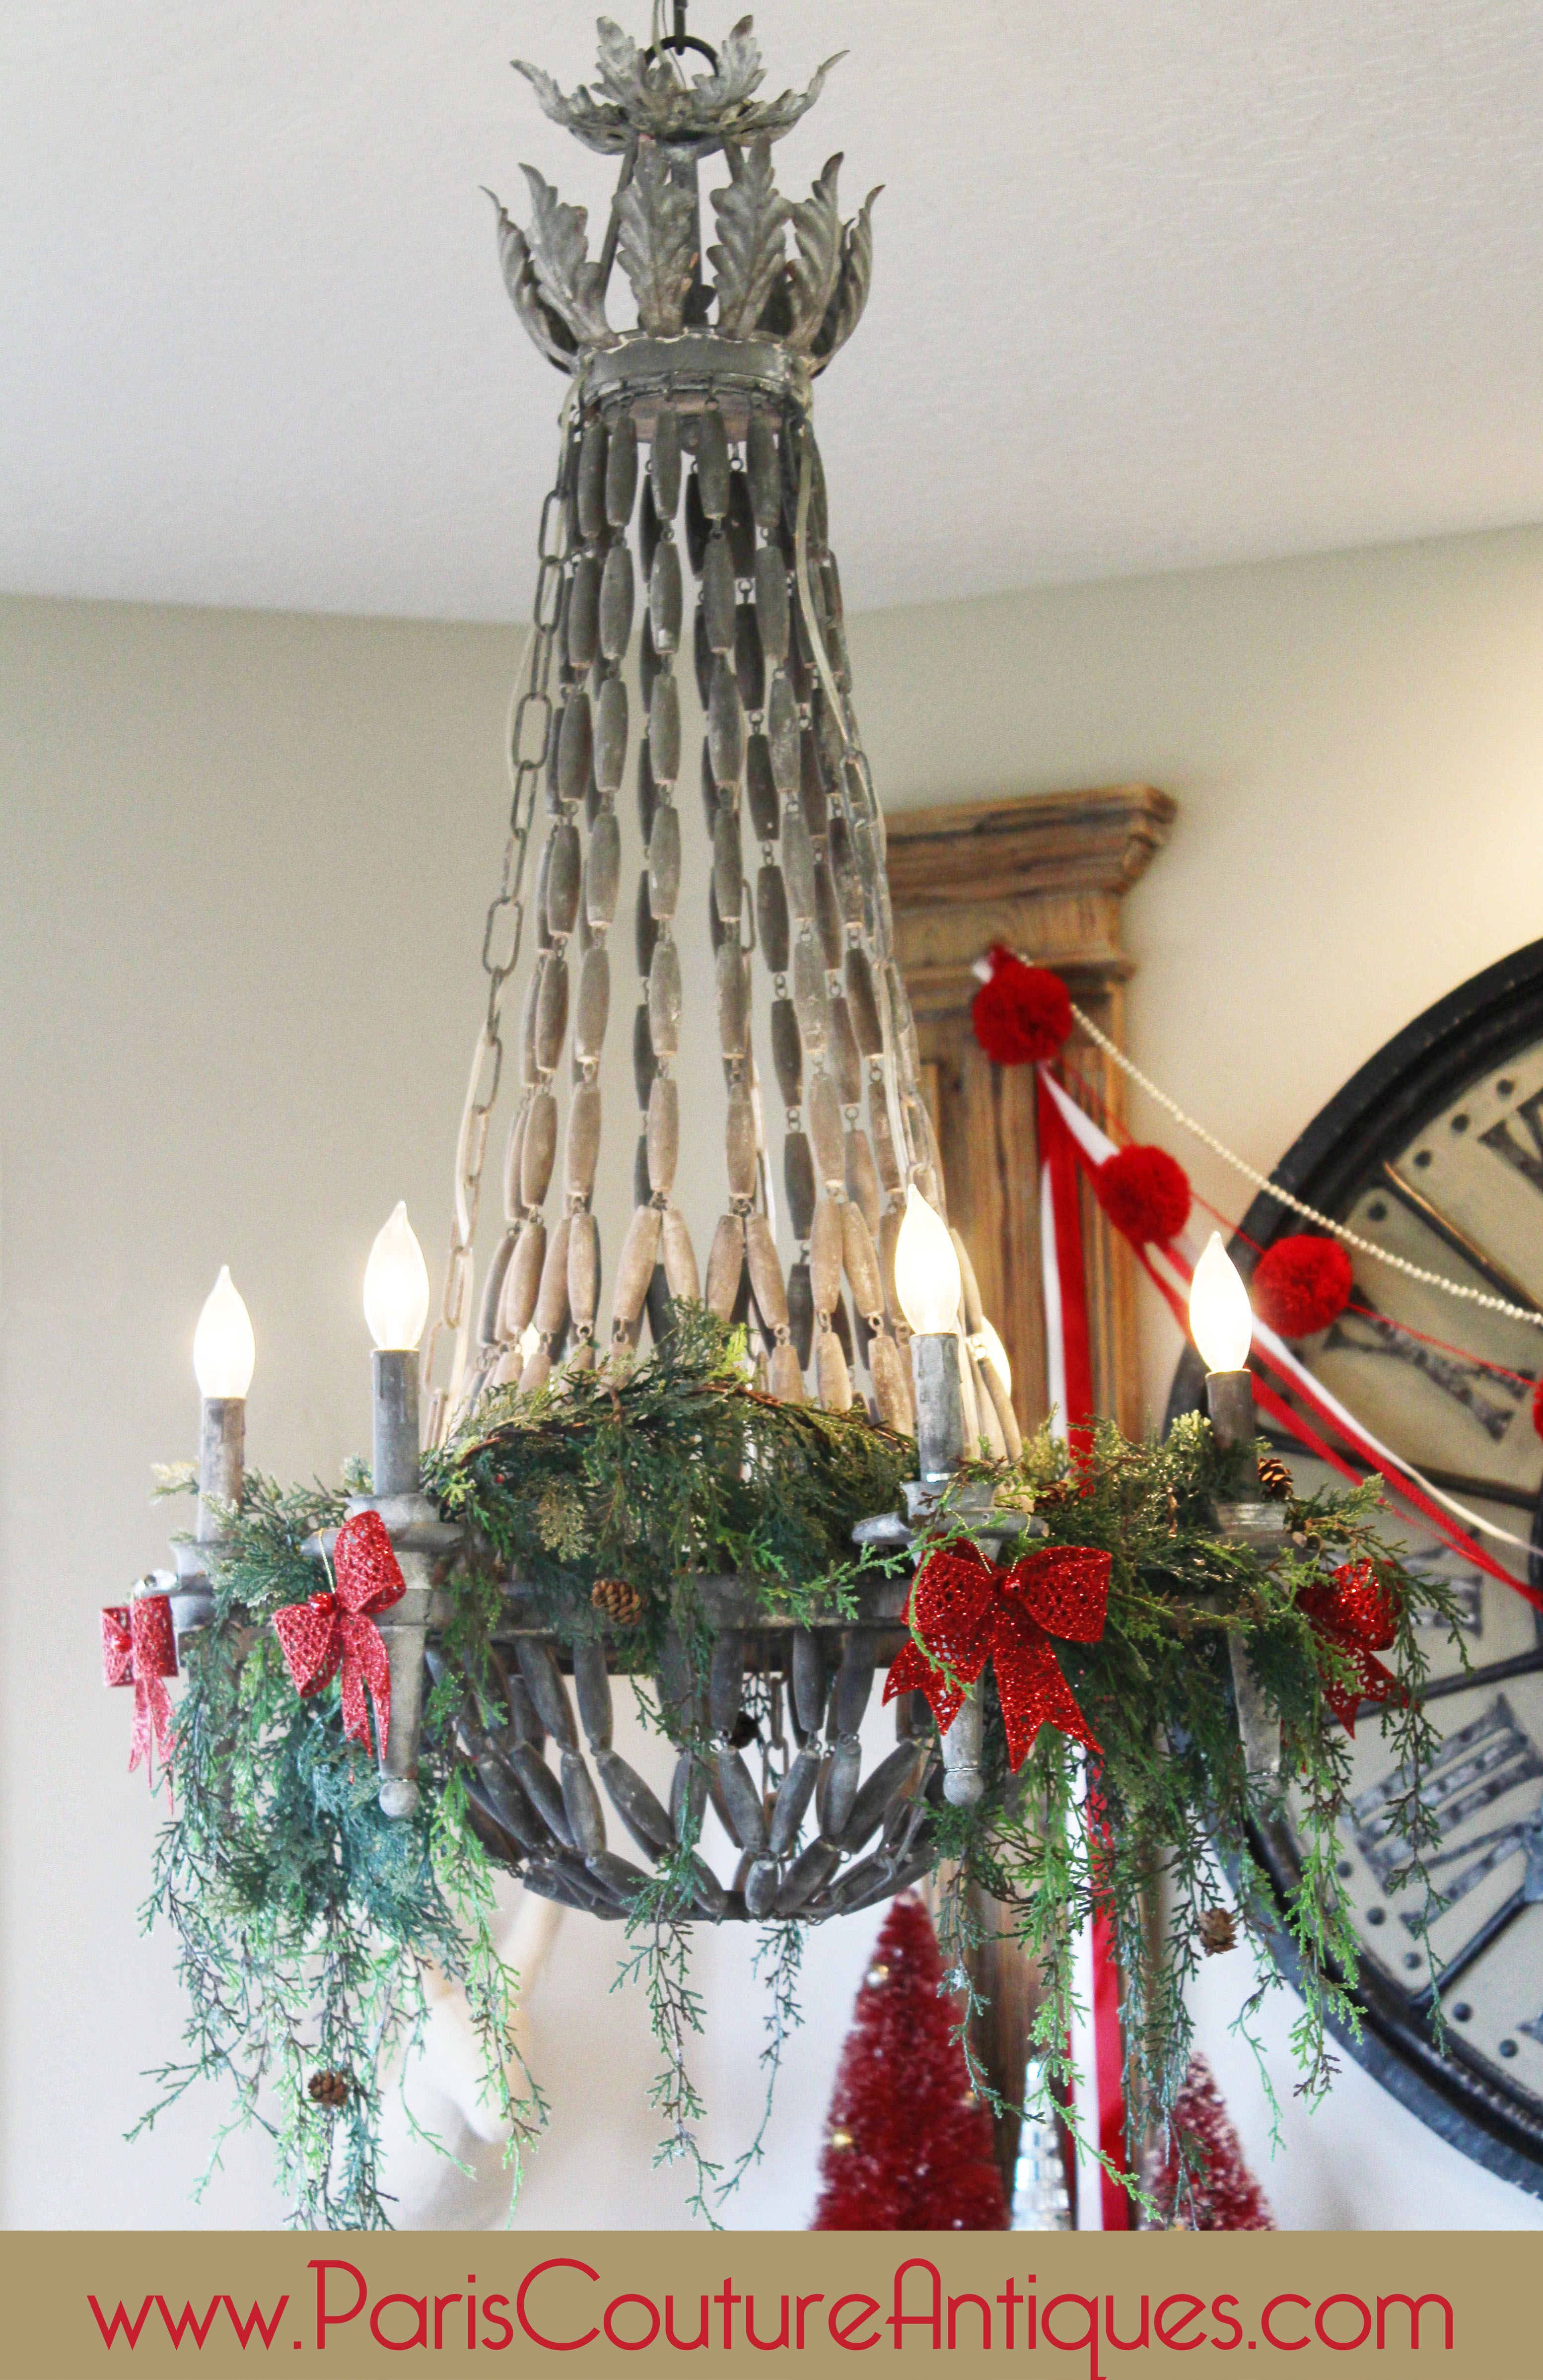 Christmas Decorating Christmas Tree Antique Vintage Shabby Chic Chandelier French Architectural red evergreen lighting Decorating DIY & Christmas Decorating Christmas Tree Antique Vintage Shabby Chic ... azcodes.com